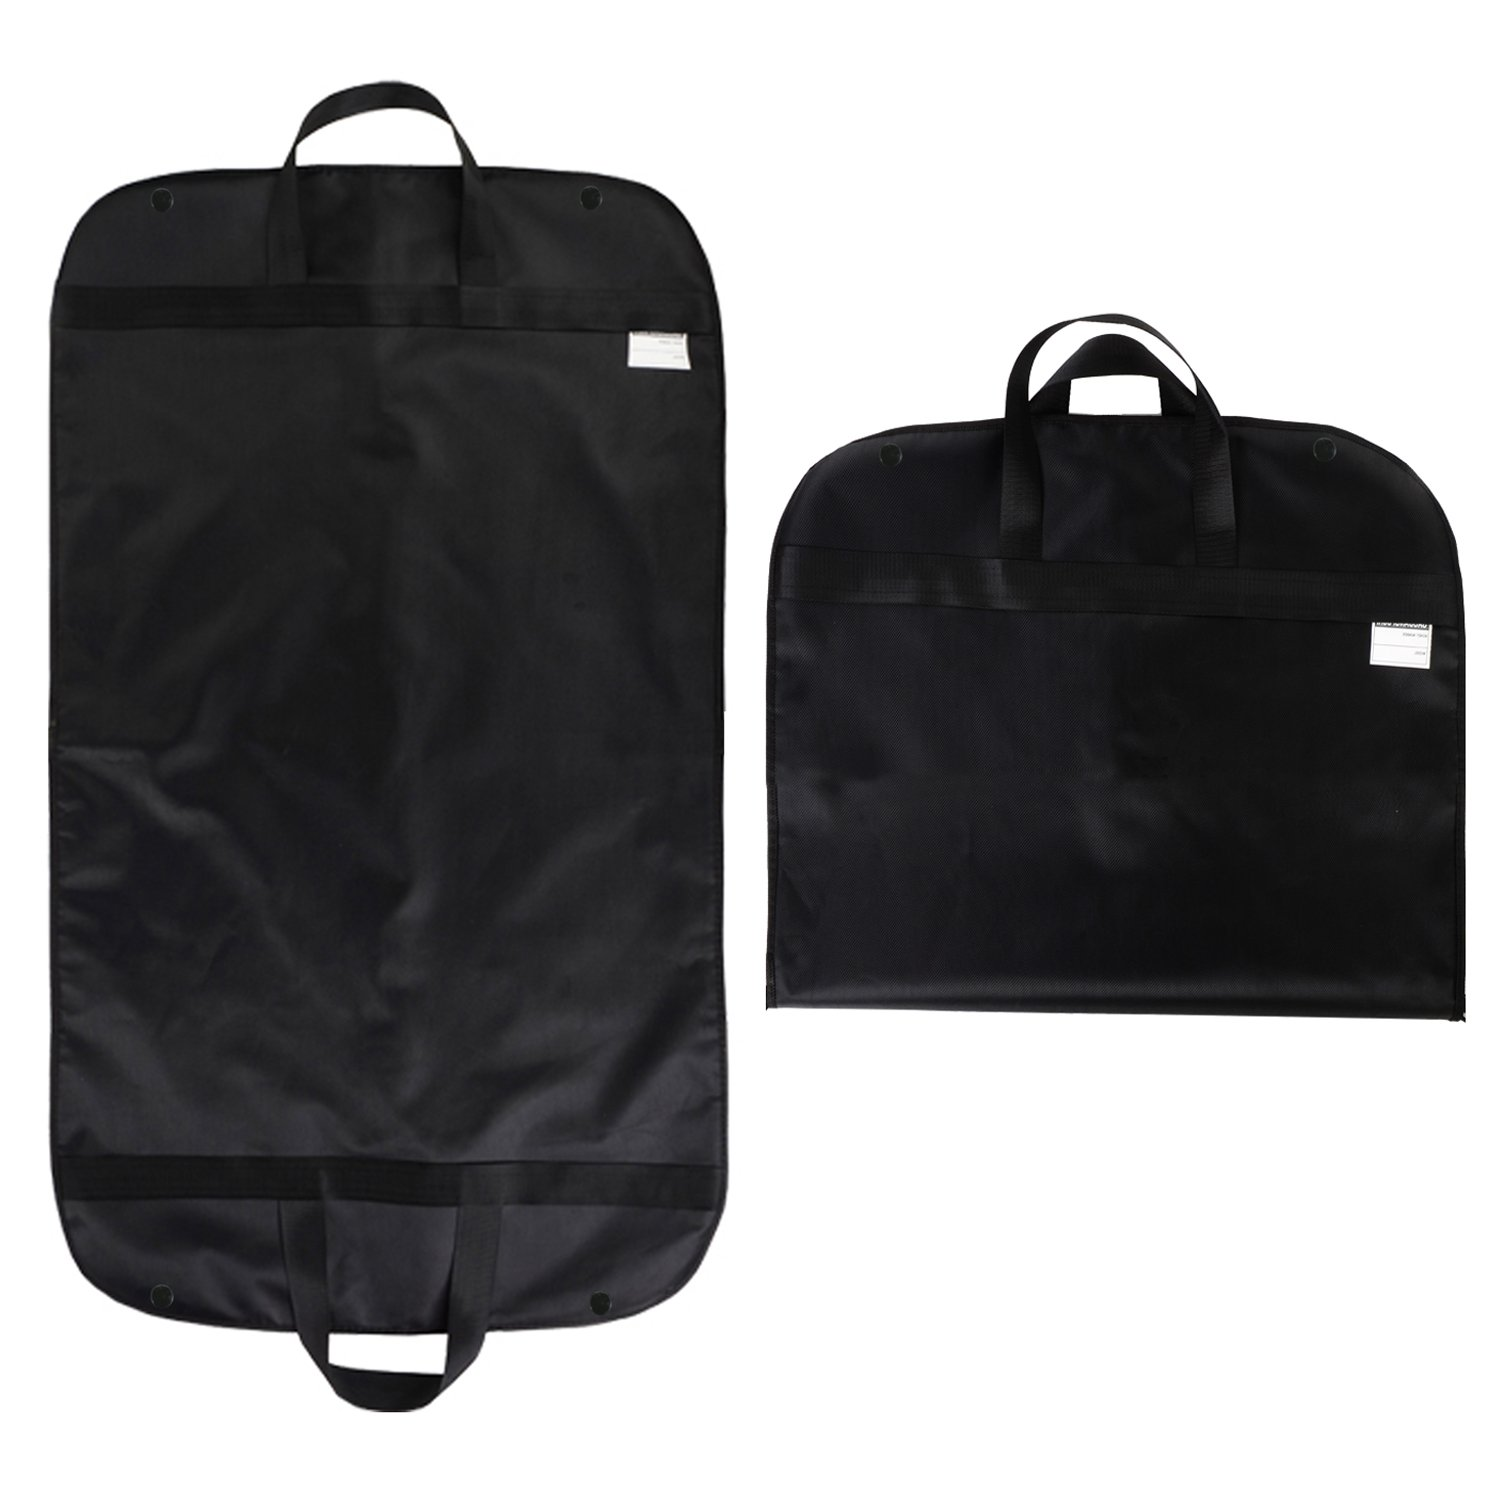 Gusset Travel Garment Bag, SPARKSOR 40